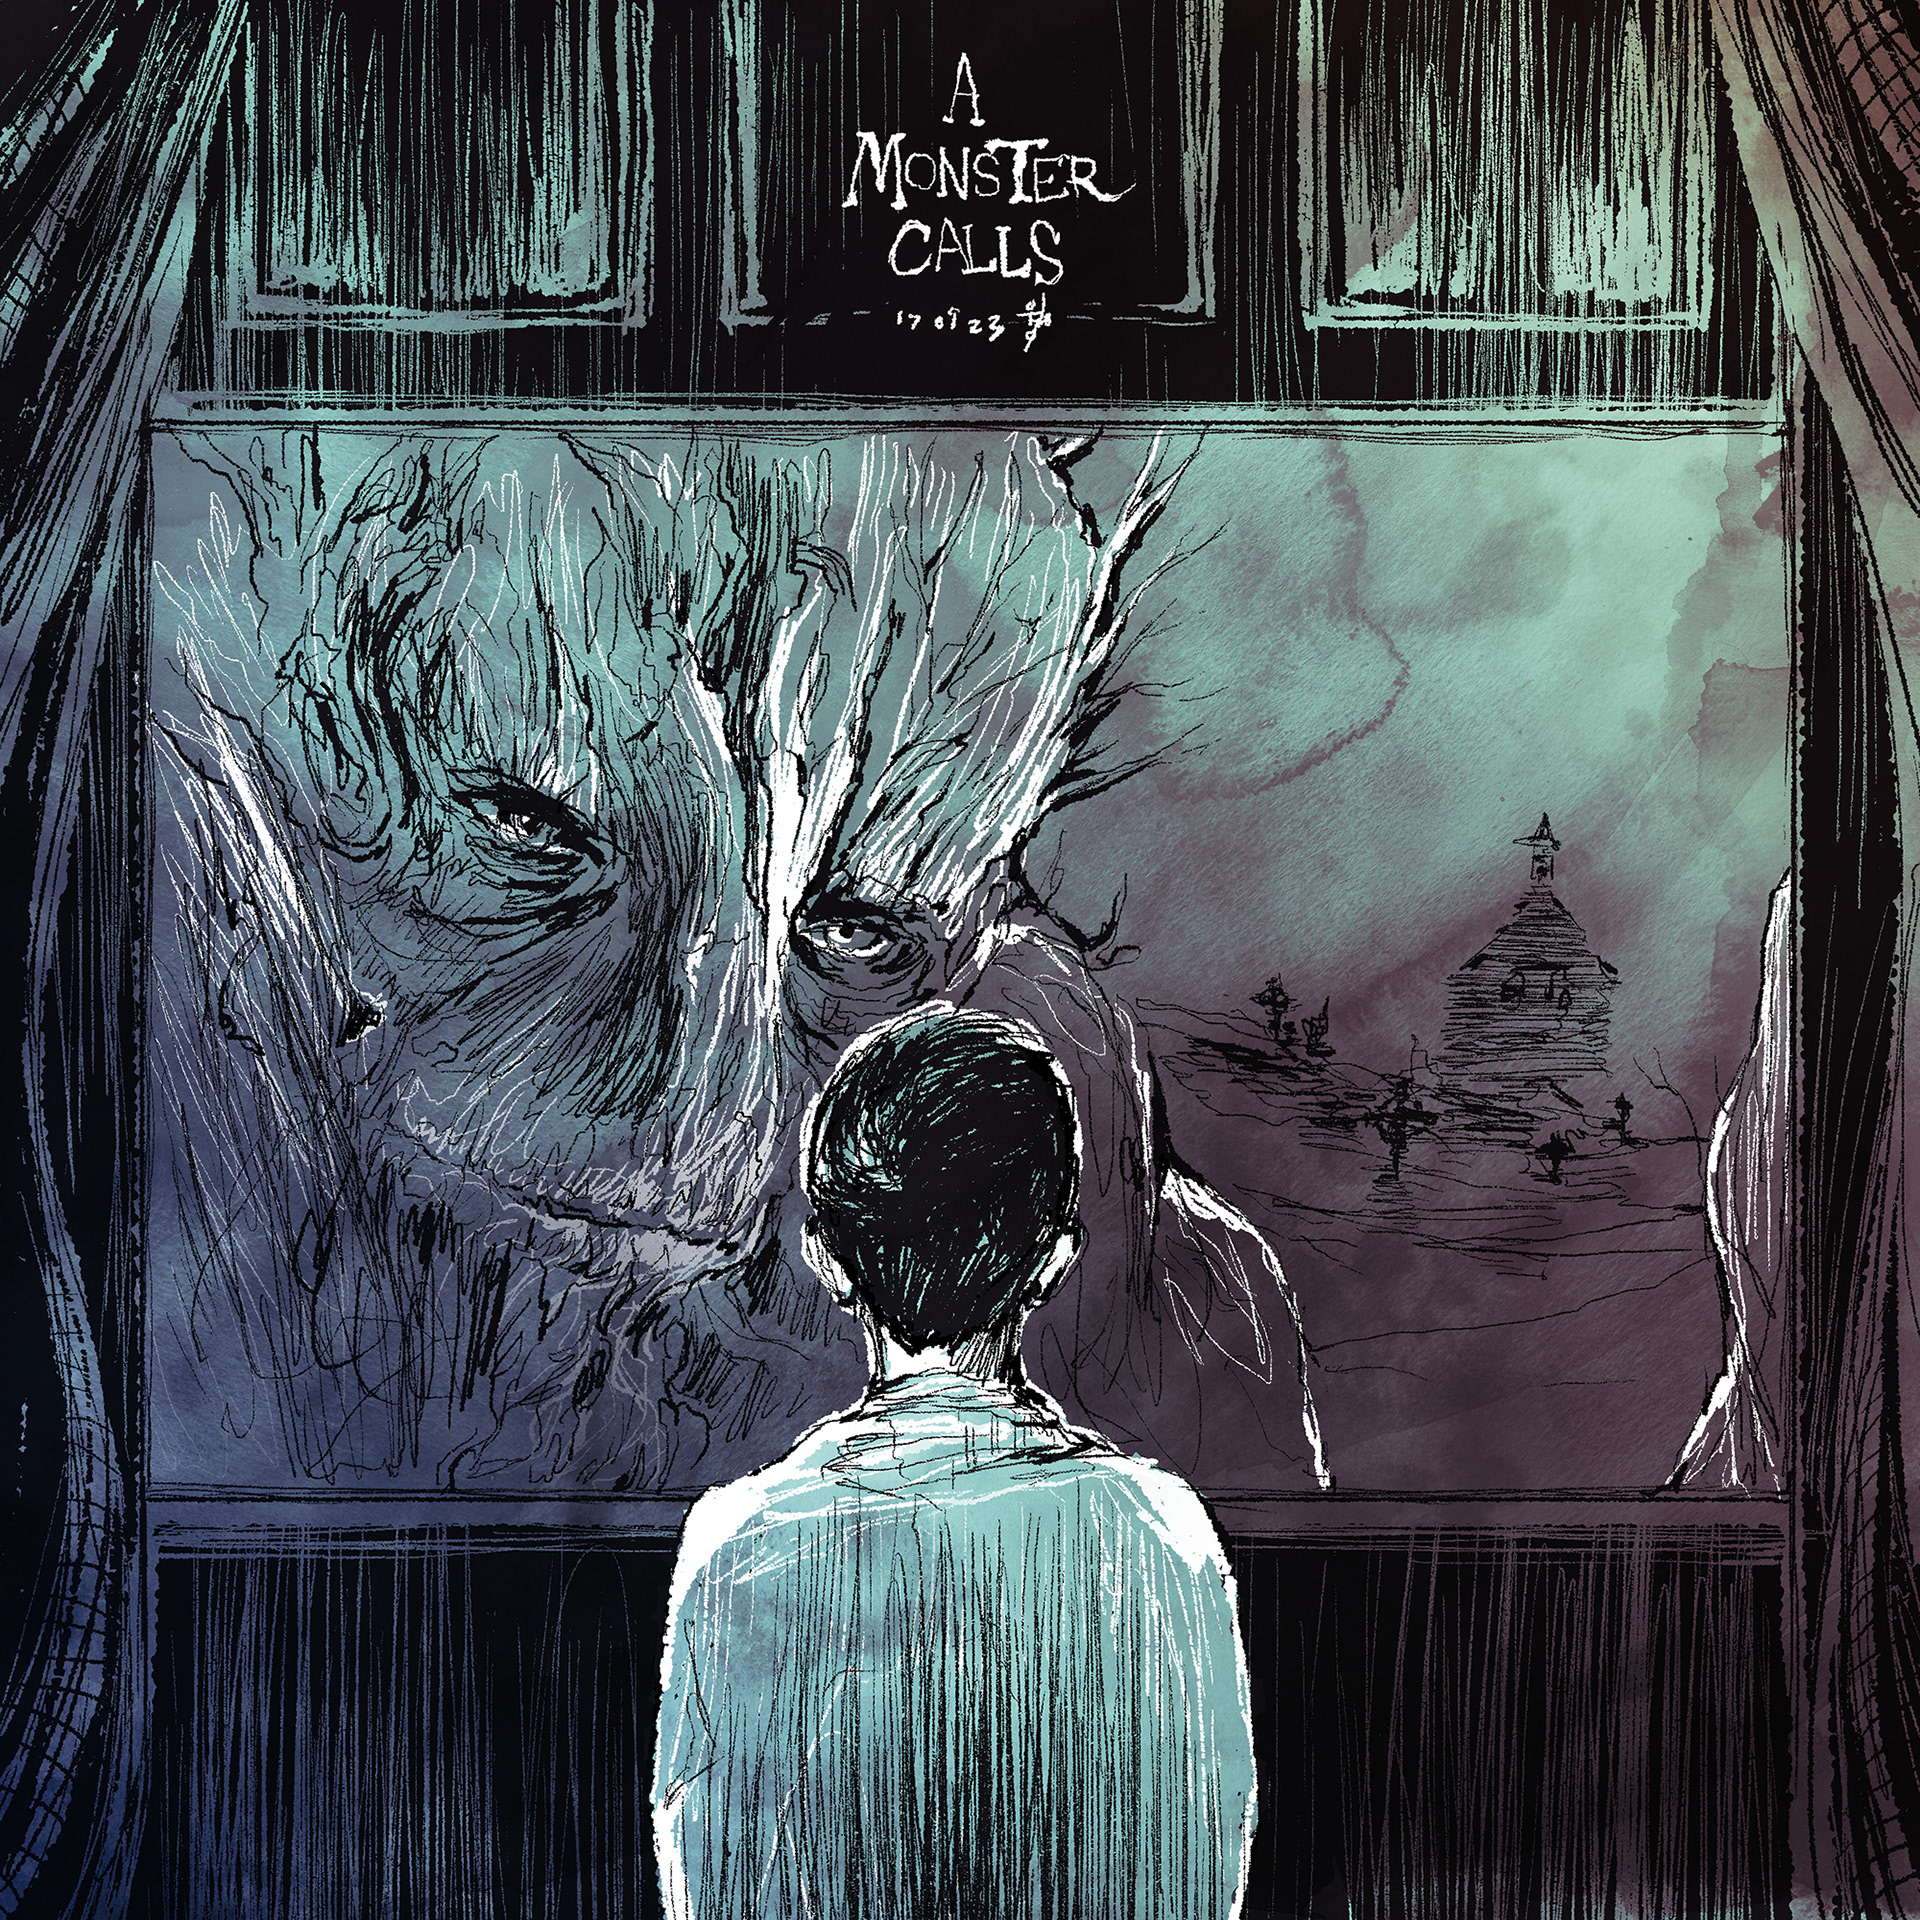 a Monster Calls / Movie fanart poster & cover on Behance